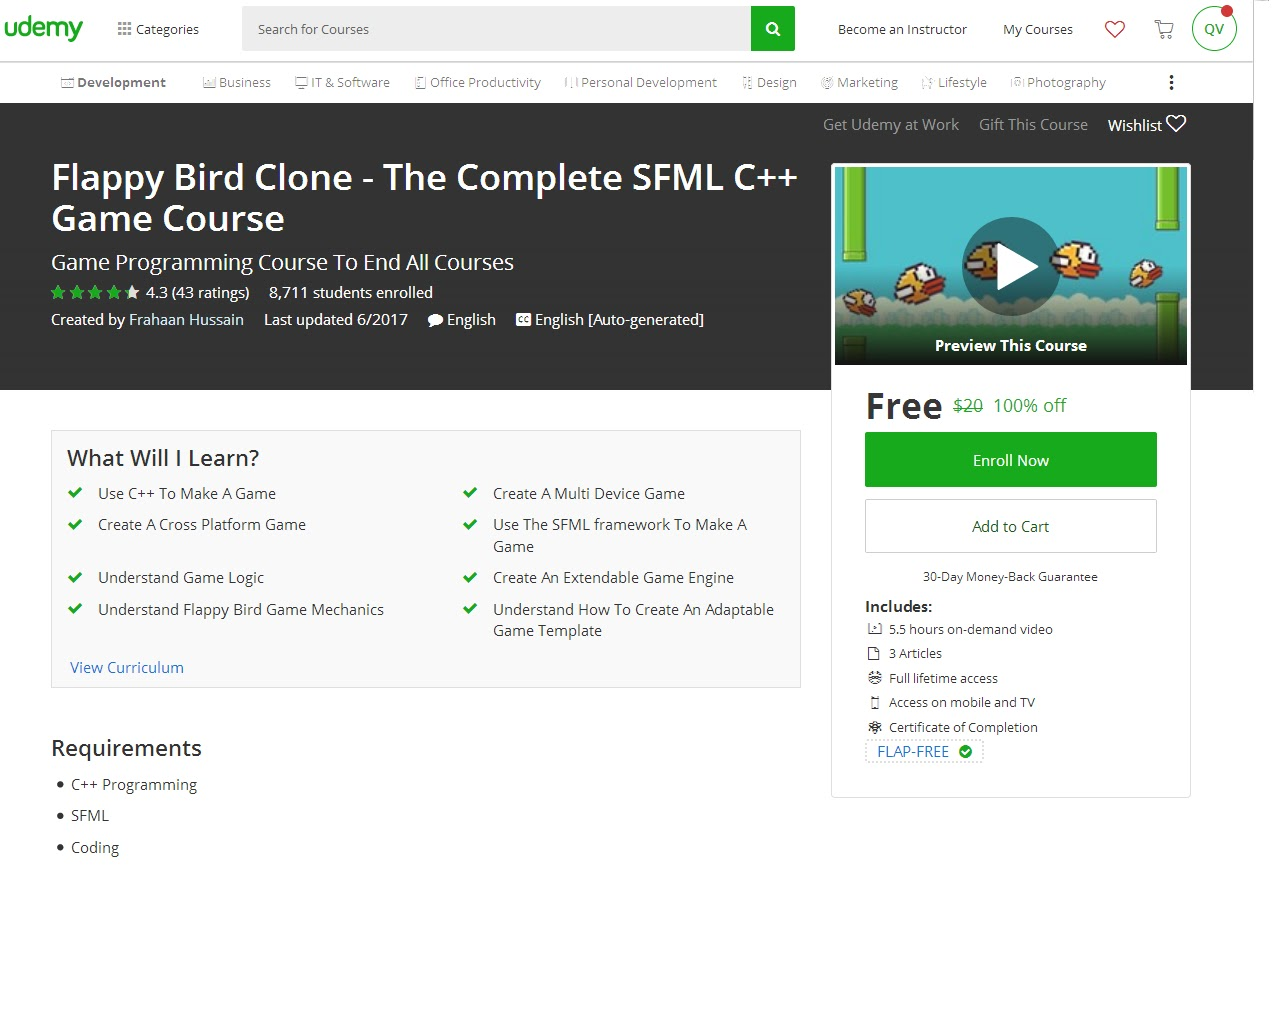 Flappy Bird Clone - The Complete SFML C++ Game Course-UDEMY